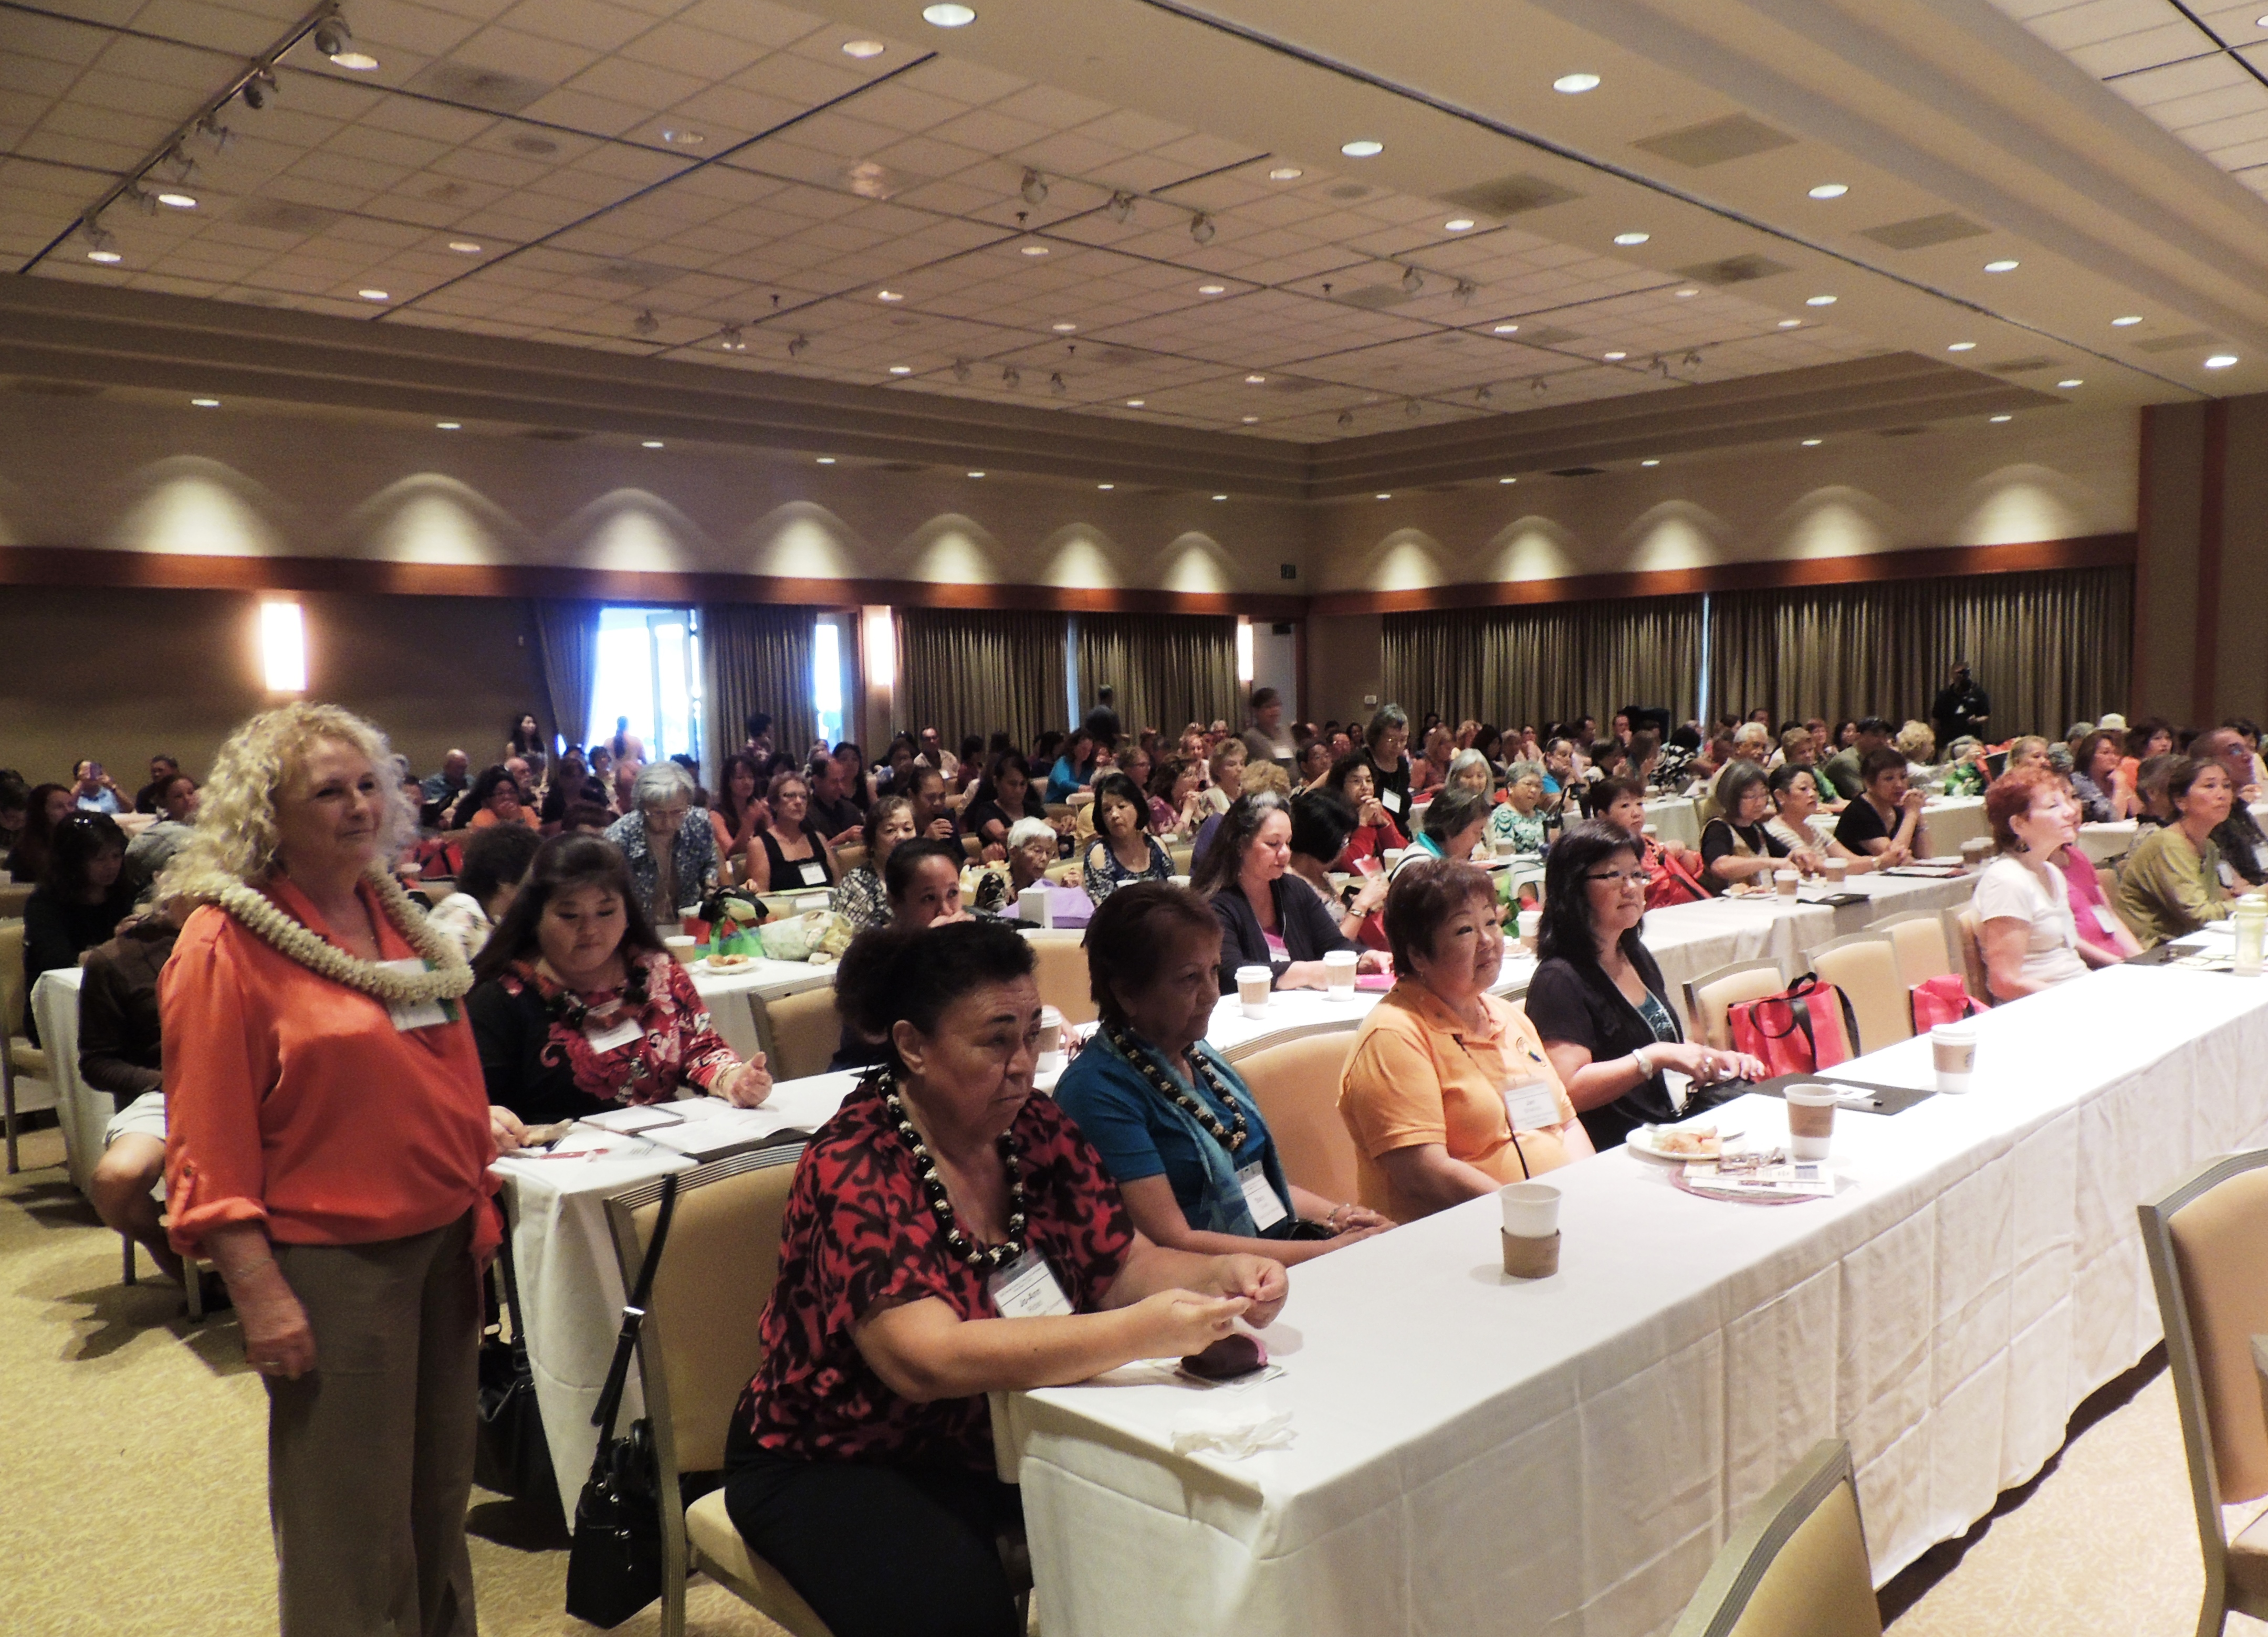 The 2014 Family Caregivers Conference drew a large audience of government officials, agency representatives and family caregivers. Photo credit County of Maui, Monica Morakis.